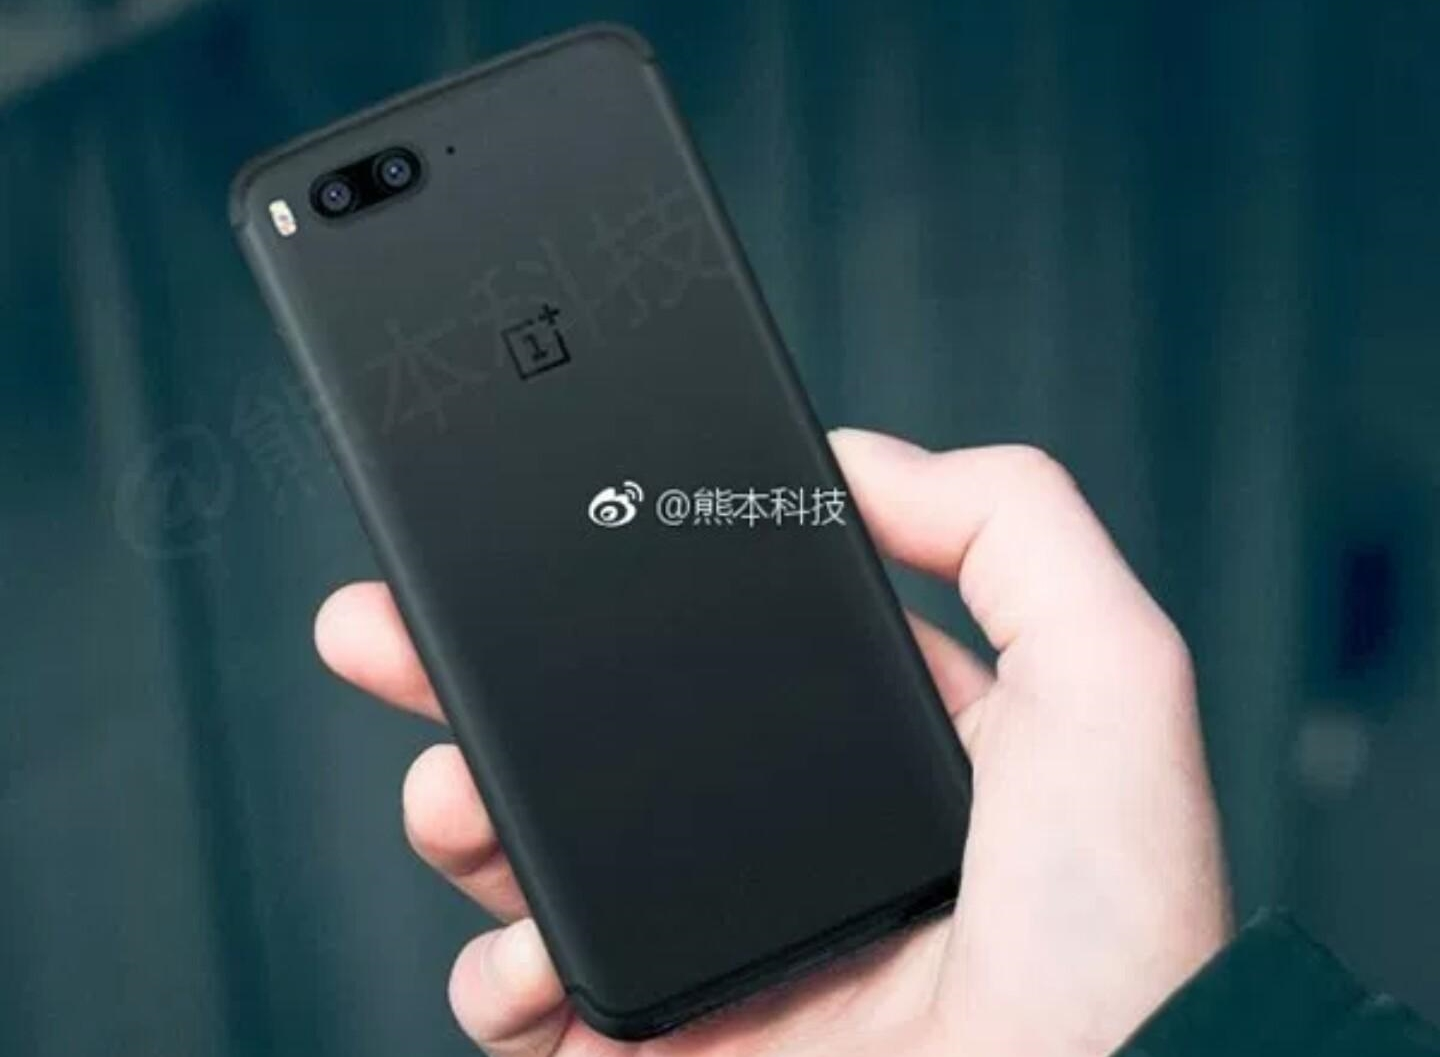 OnePlus 5 design iPhone 7 Plus